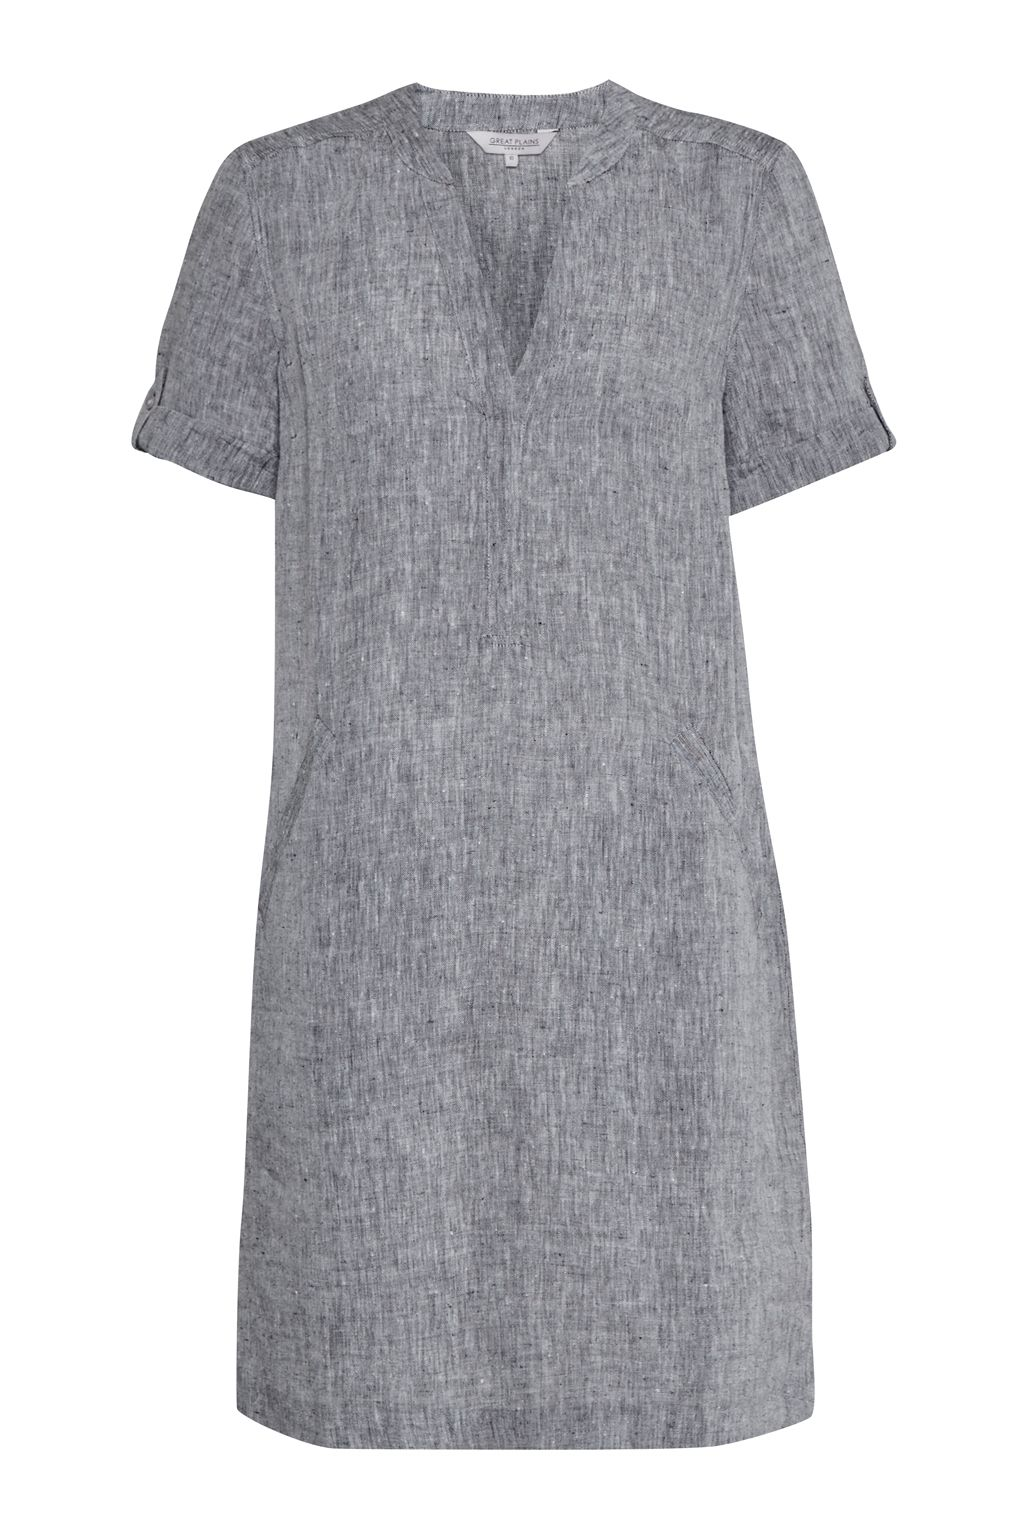 Find great deals on eBay for linen shift dress. Shop with confidence.